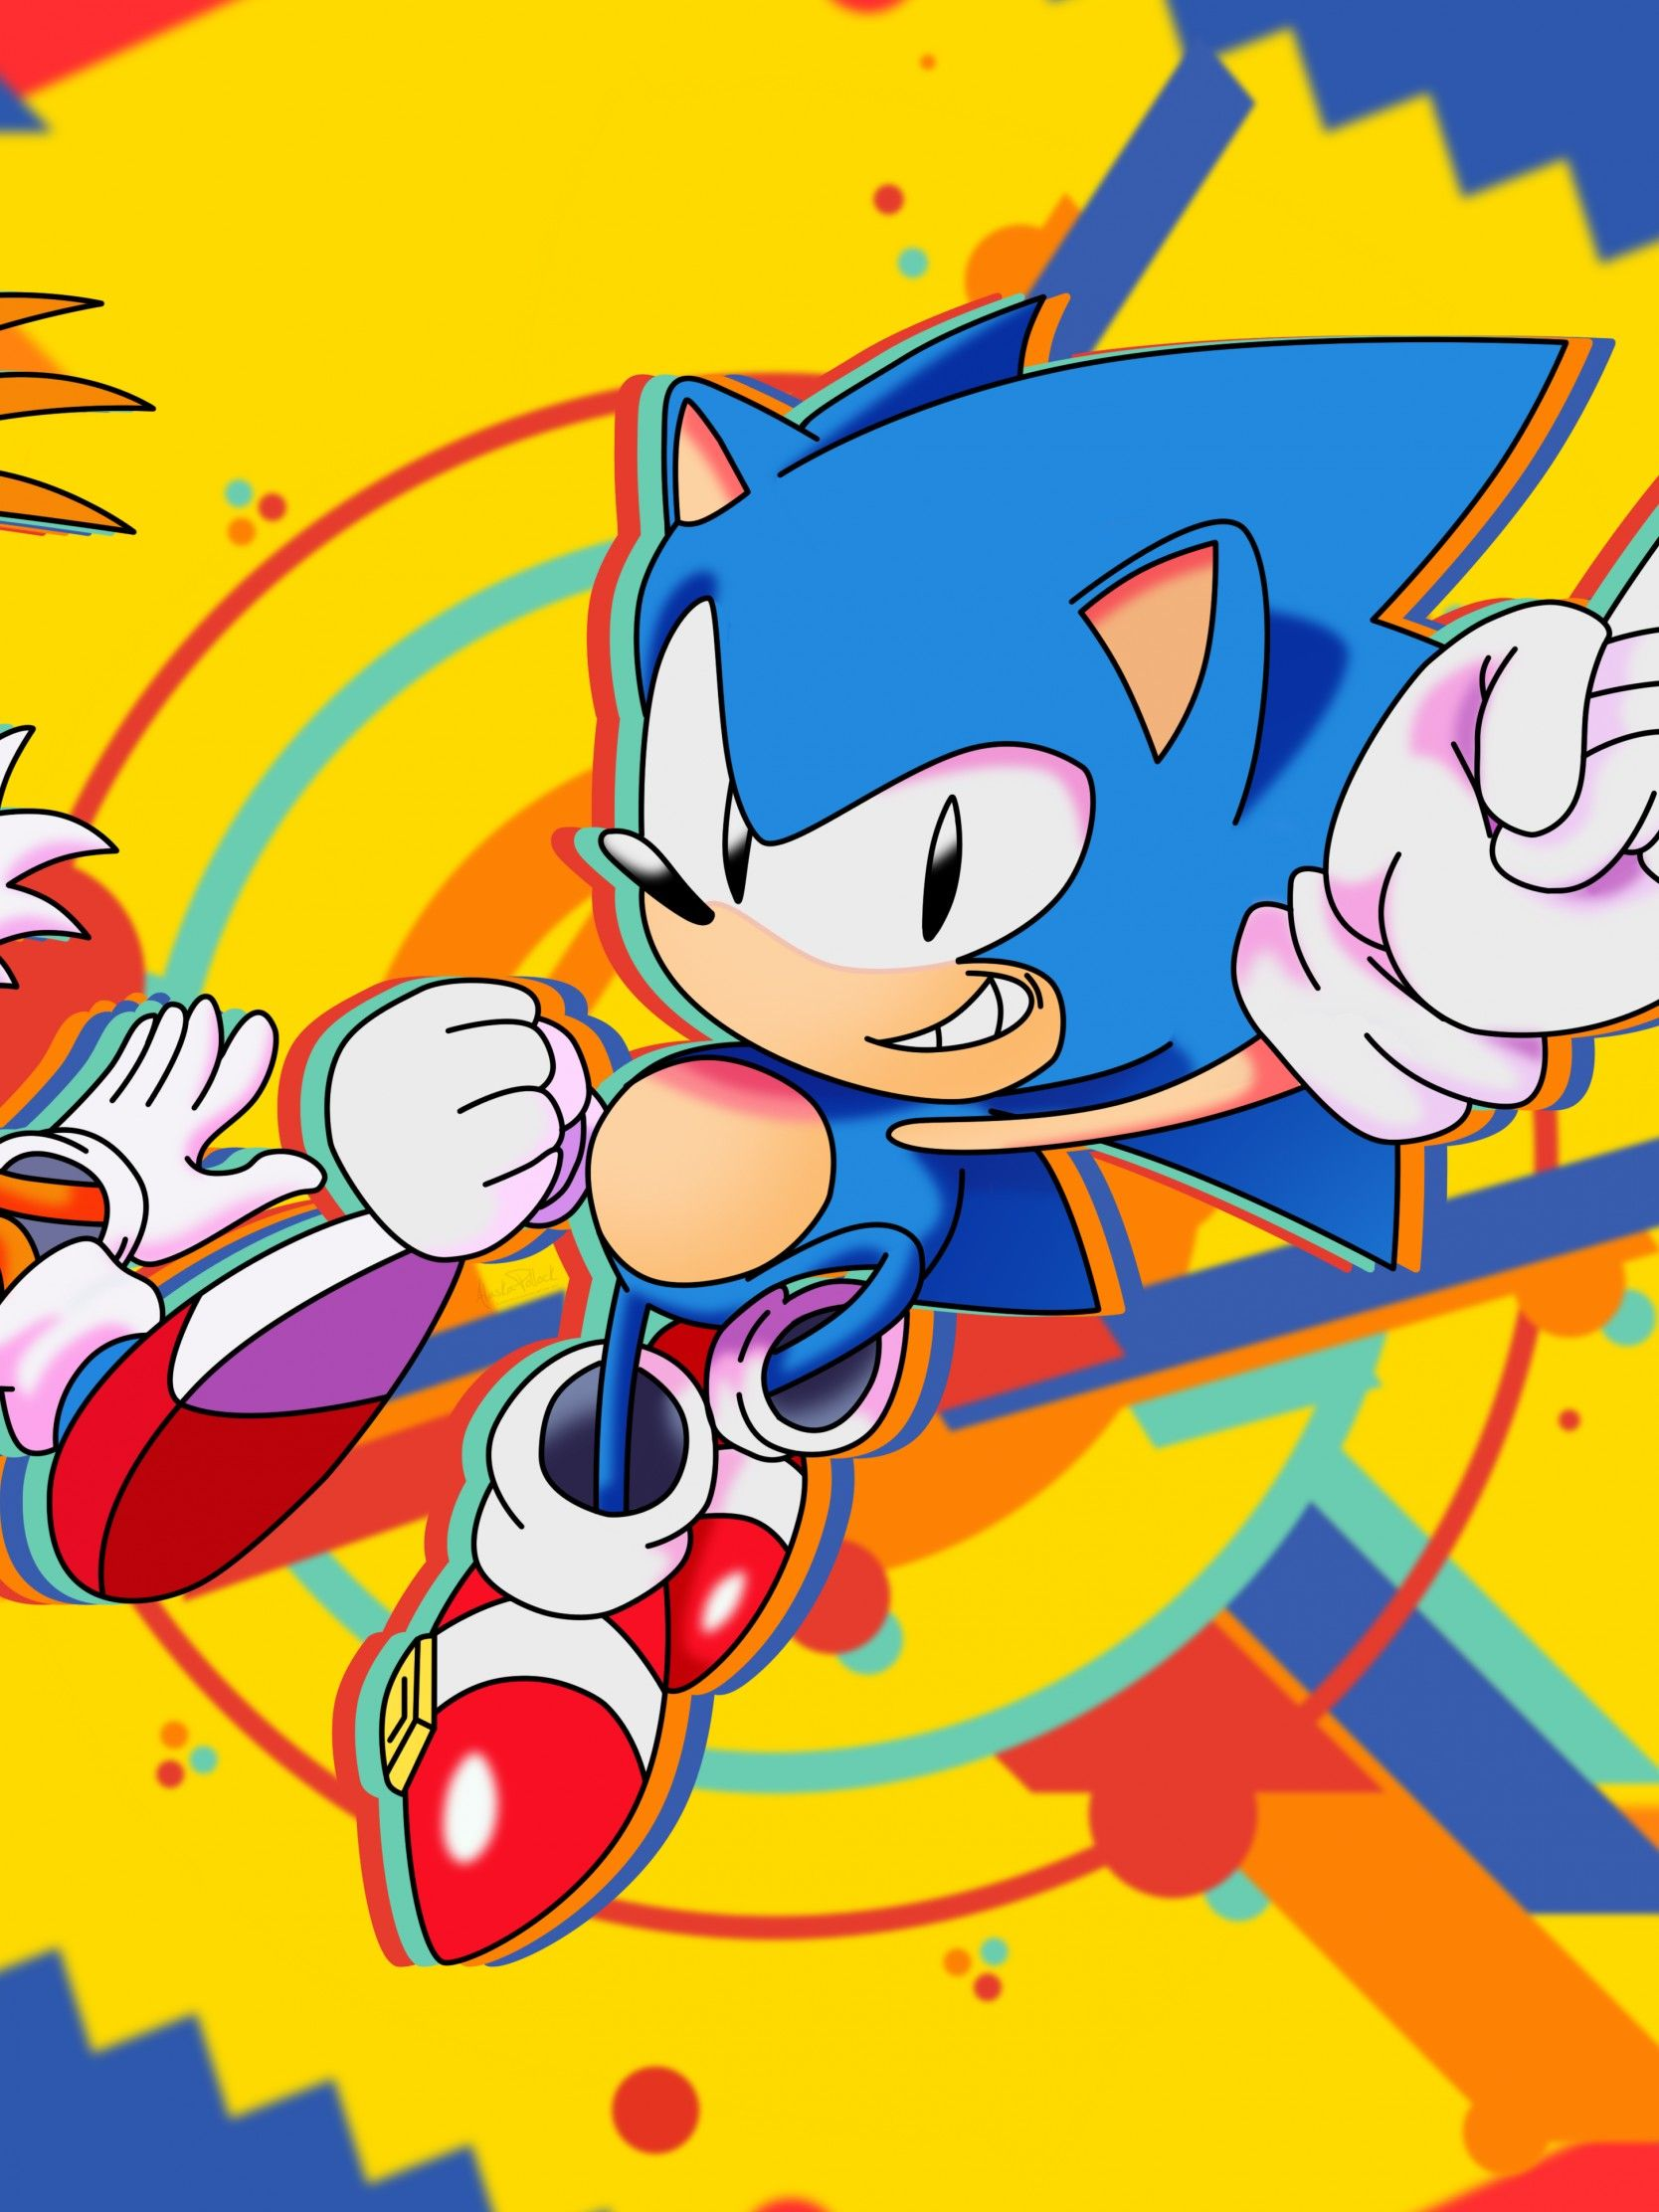 Sonic Mania Wallpapers - Top Free Sonic Mania Backgrounds ...